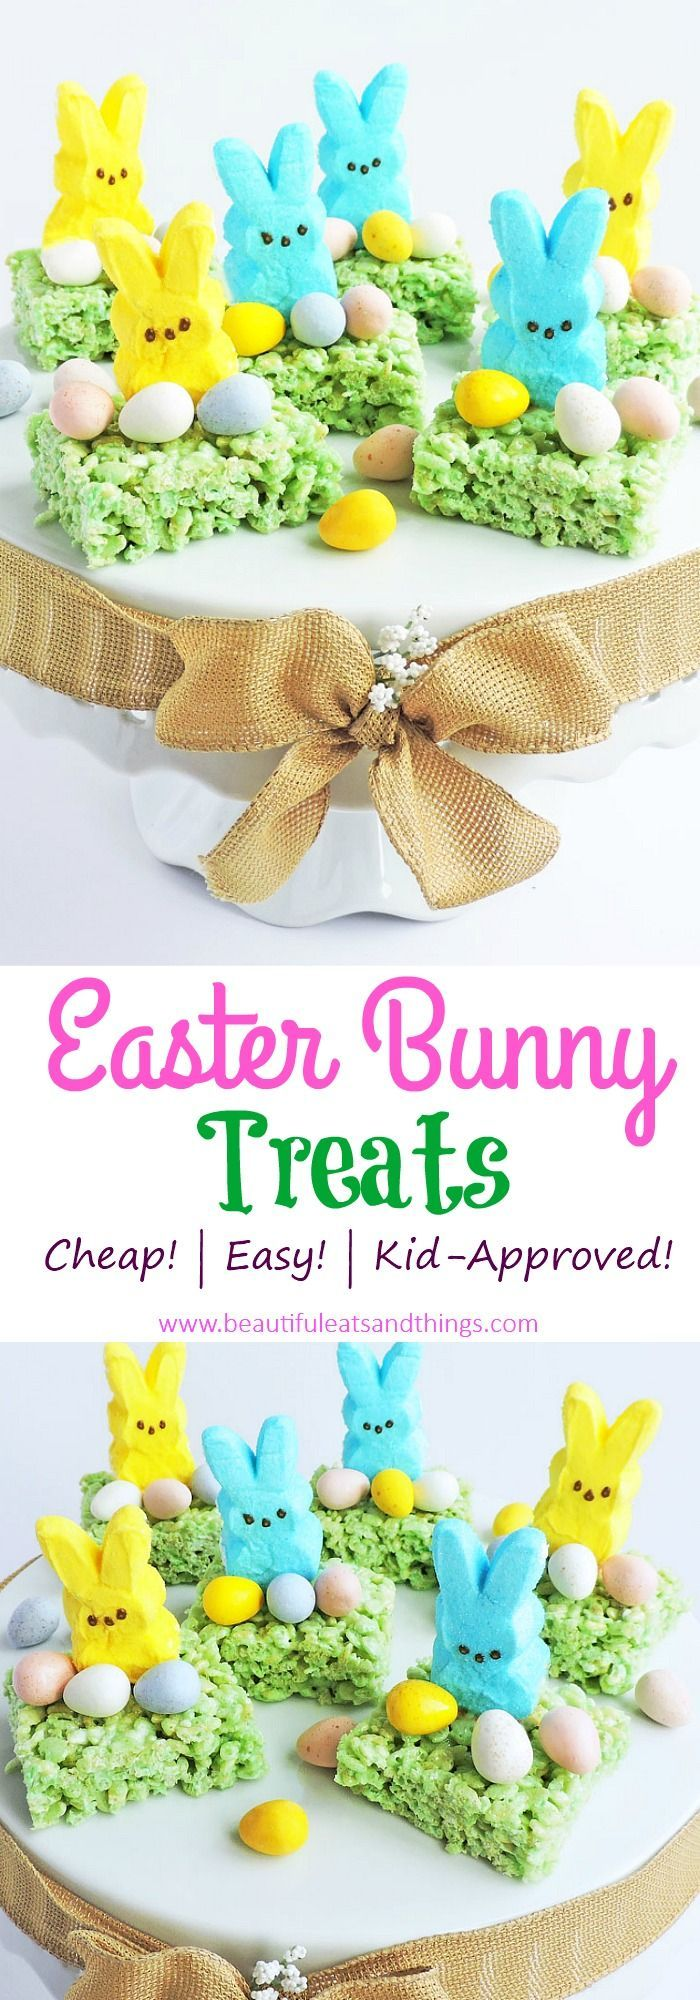 Easy Easter Bunny Treats-Cute Ideas for Easter Treats. #easter #eastercrafts #ea…   – Easy Easter Ideas